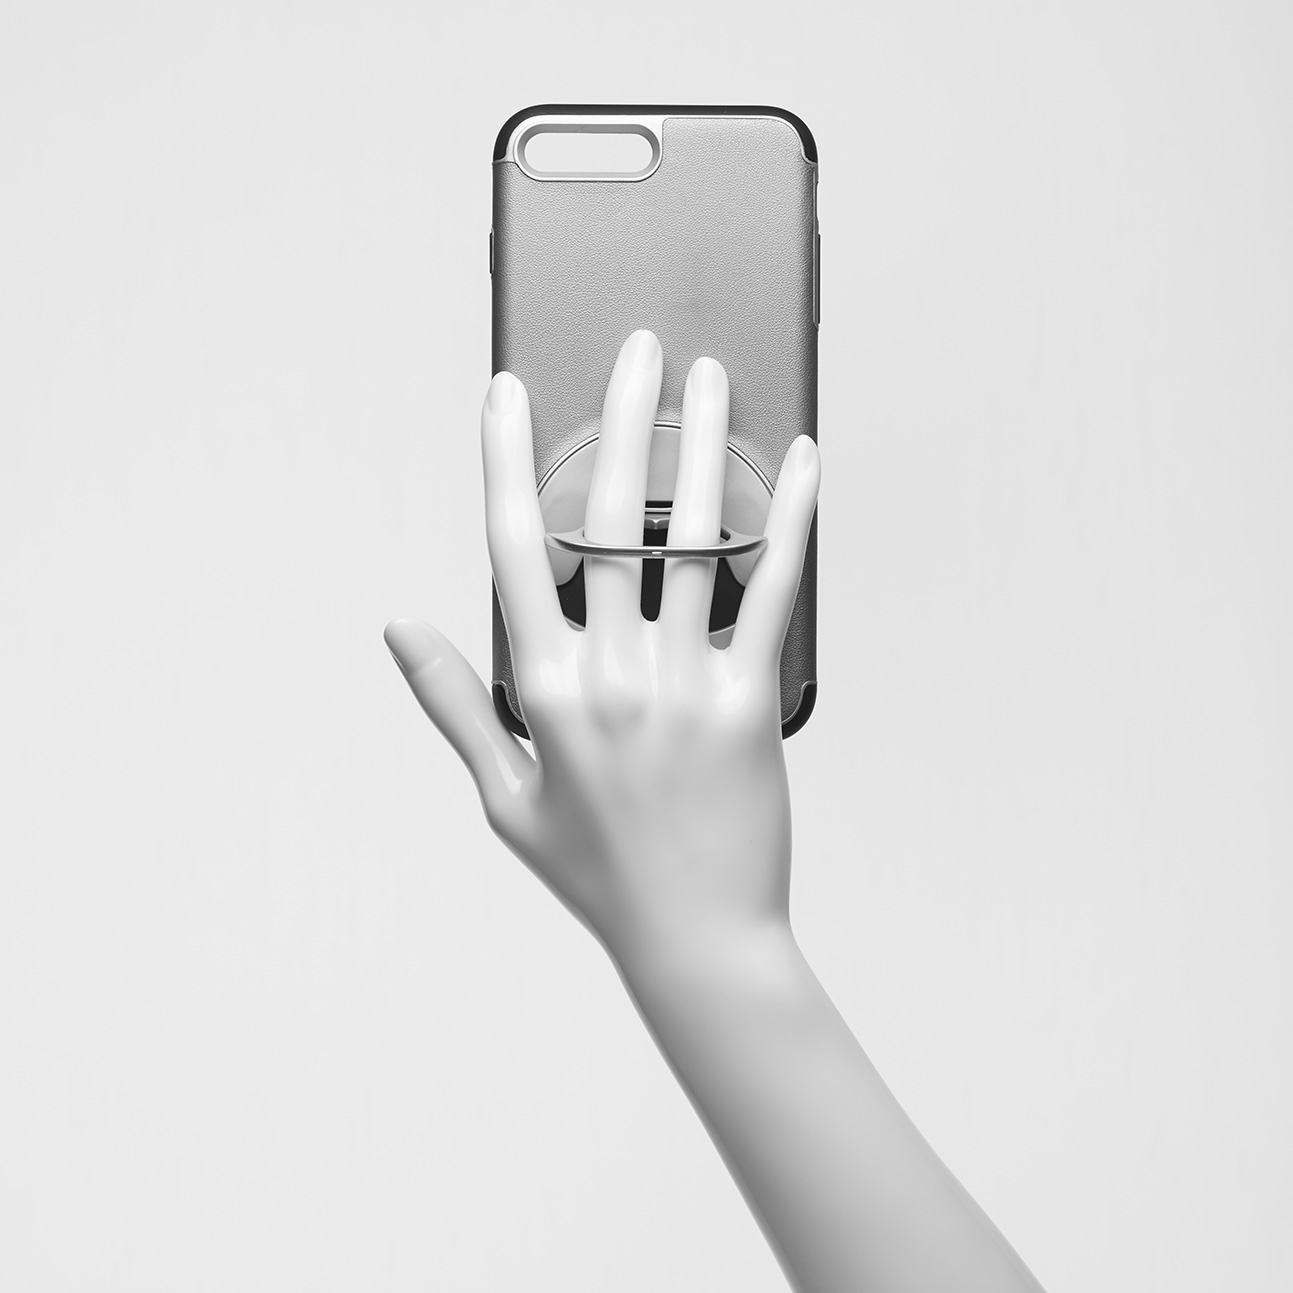 Component 3  / Photograph of the hand holding the phone used to composite into the final image. Used in the final picture of the purple phone case.